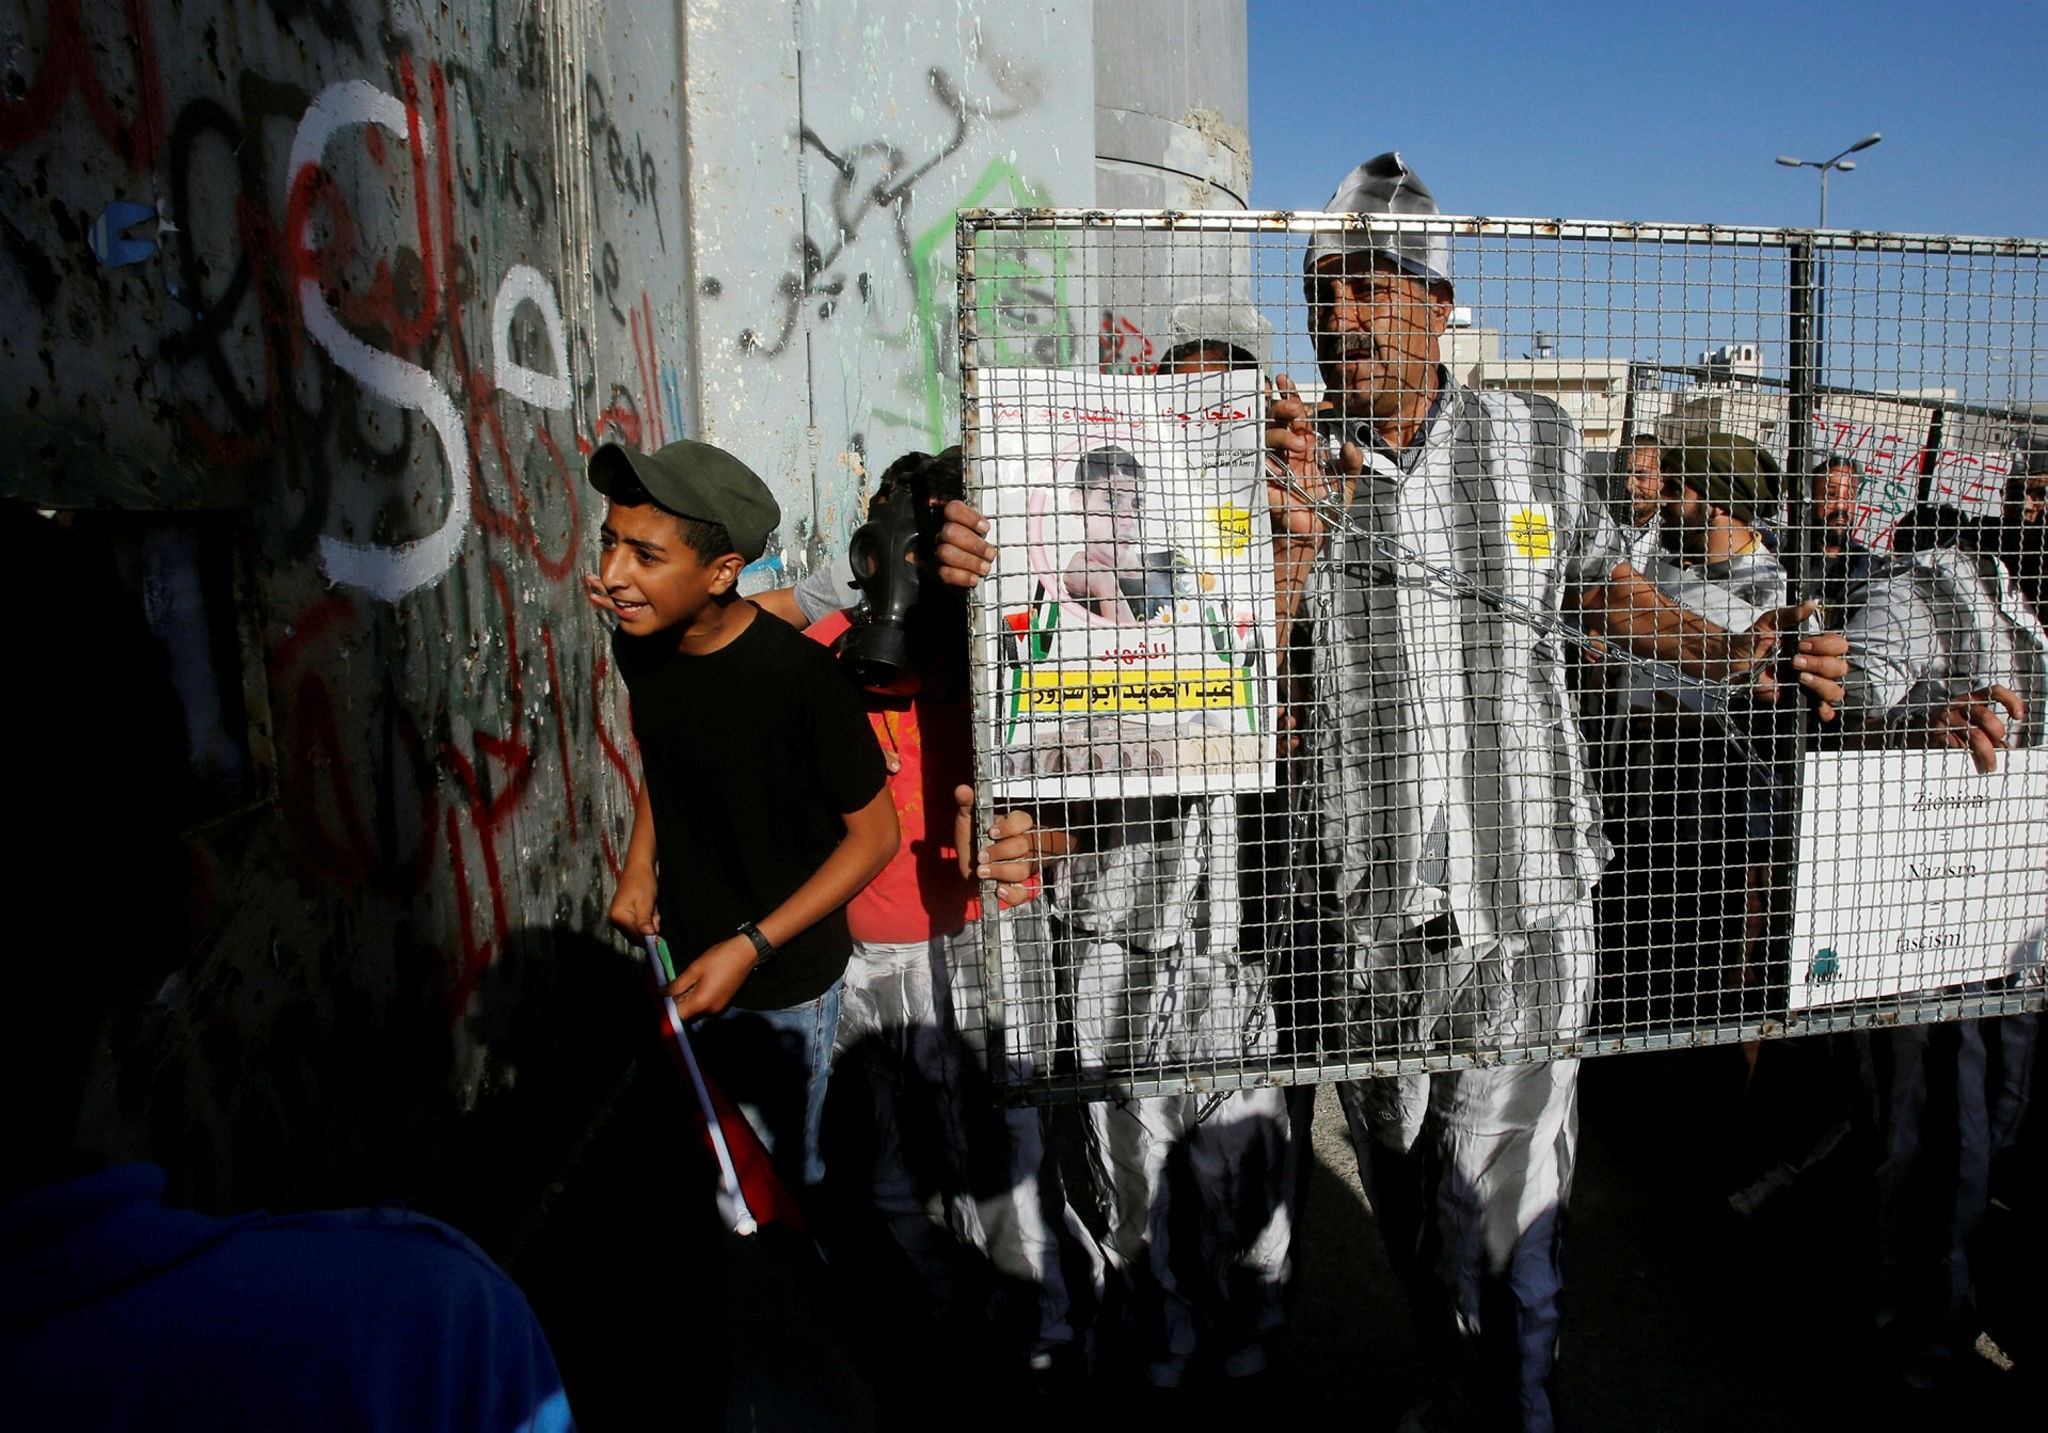 Palestinians take part in a protest in support of Palestinian prisoners on hunger strike in Israeli jails, in the West Bank city of Bethlehem May 4, 2017. (Reuters Photo)